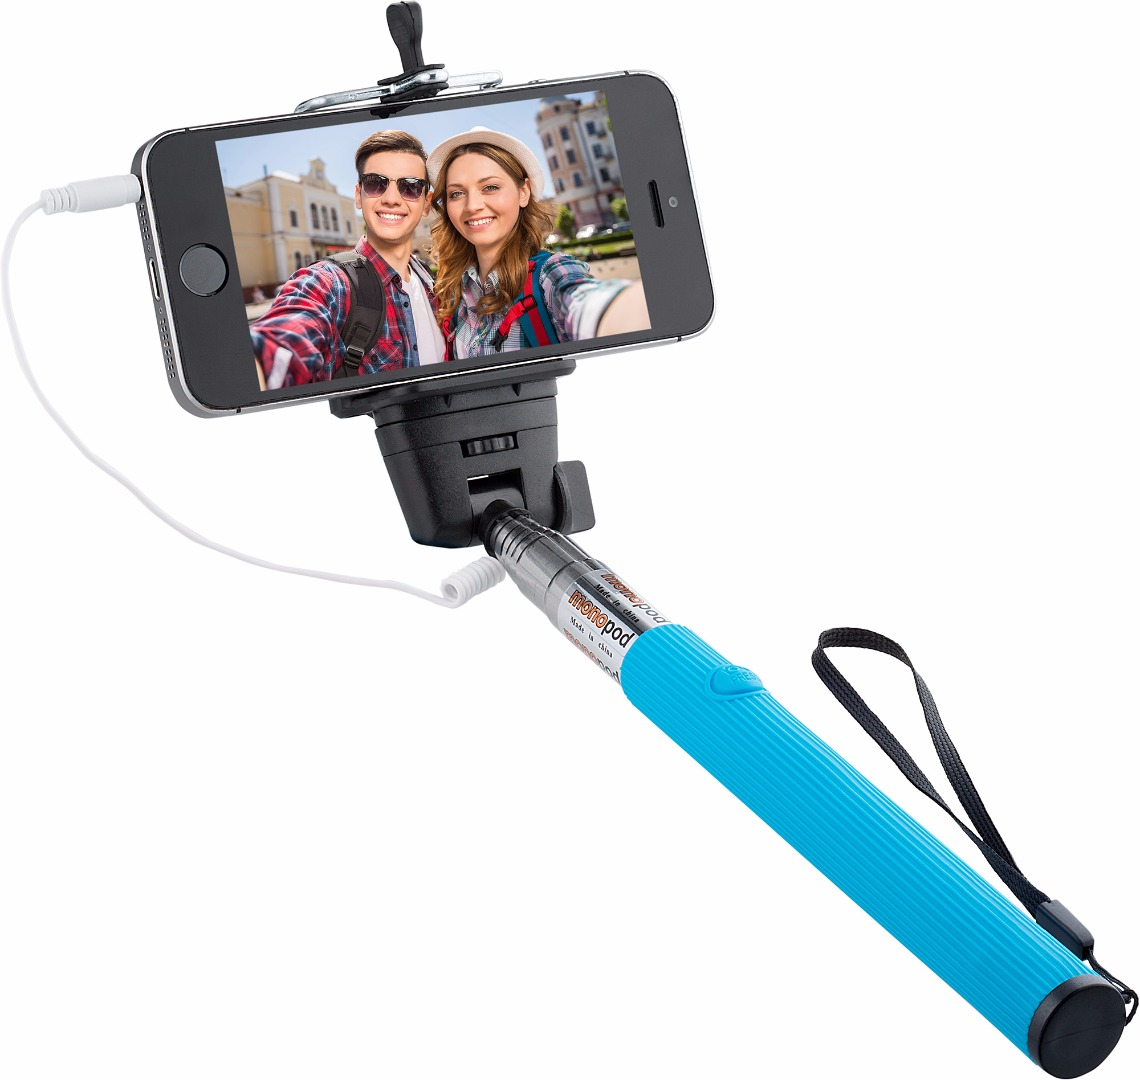 Knox Monopod Selfie with Cable and Single Button Shutter - Blue